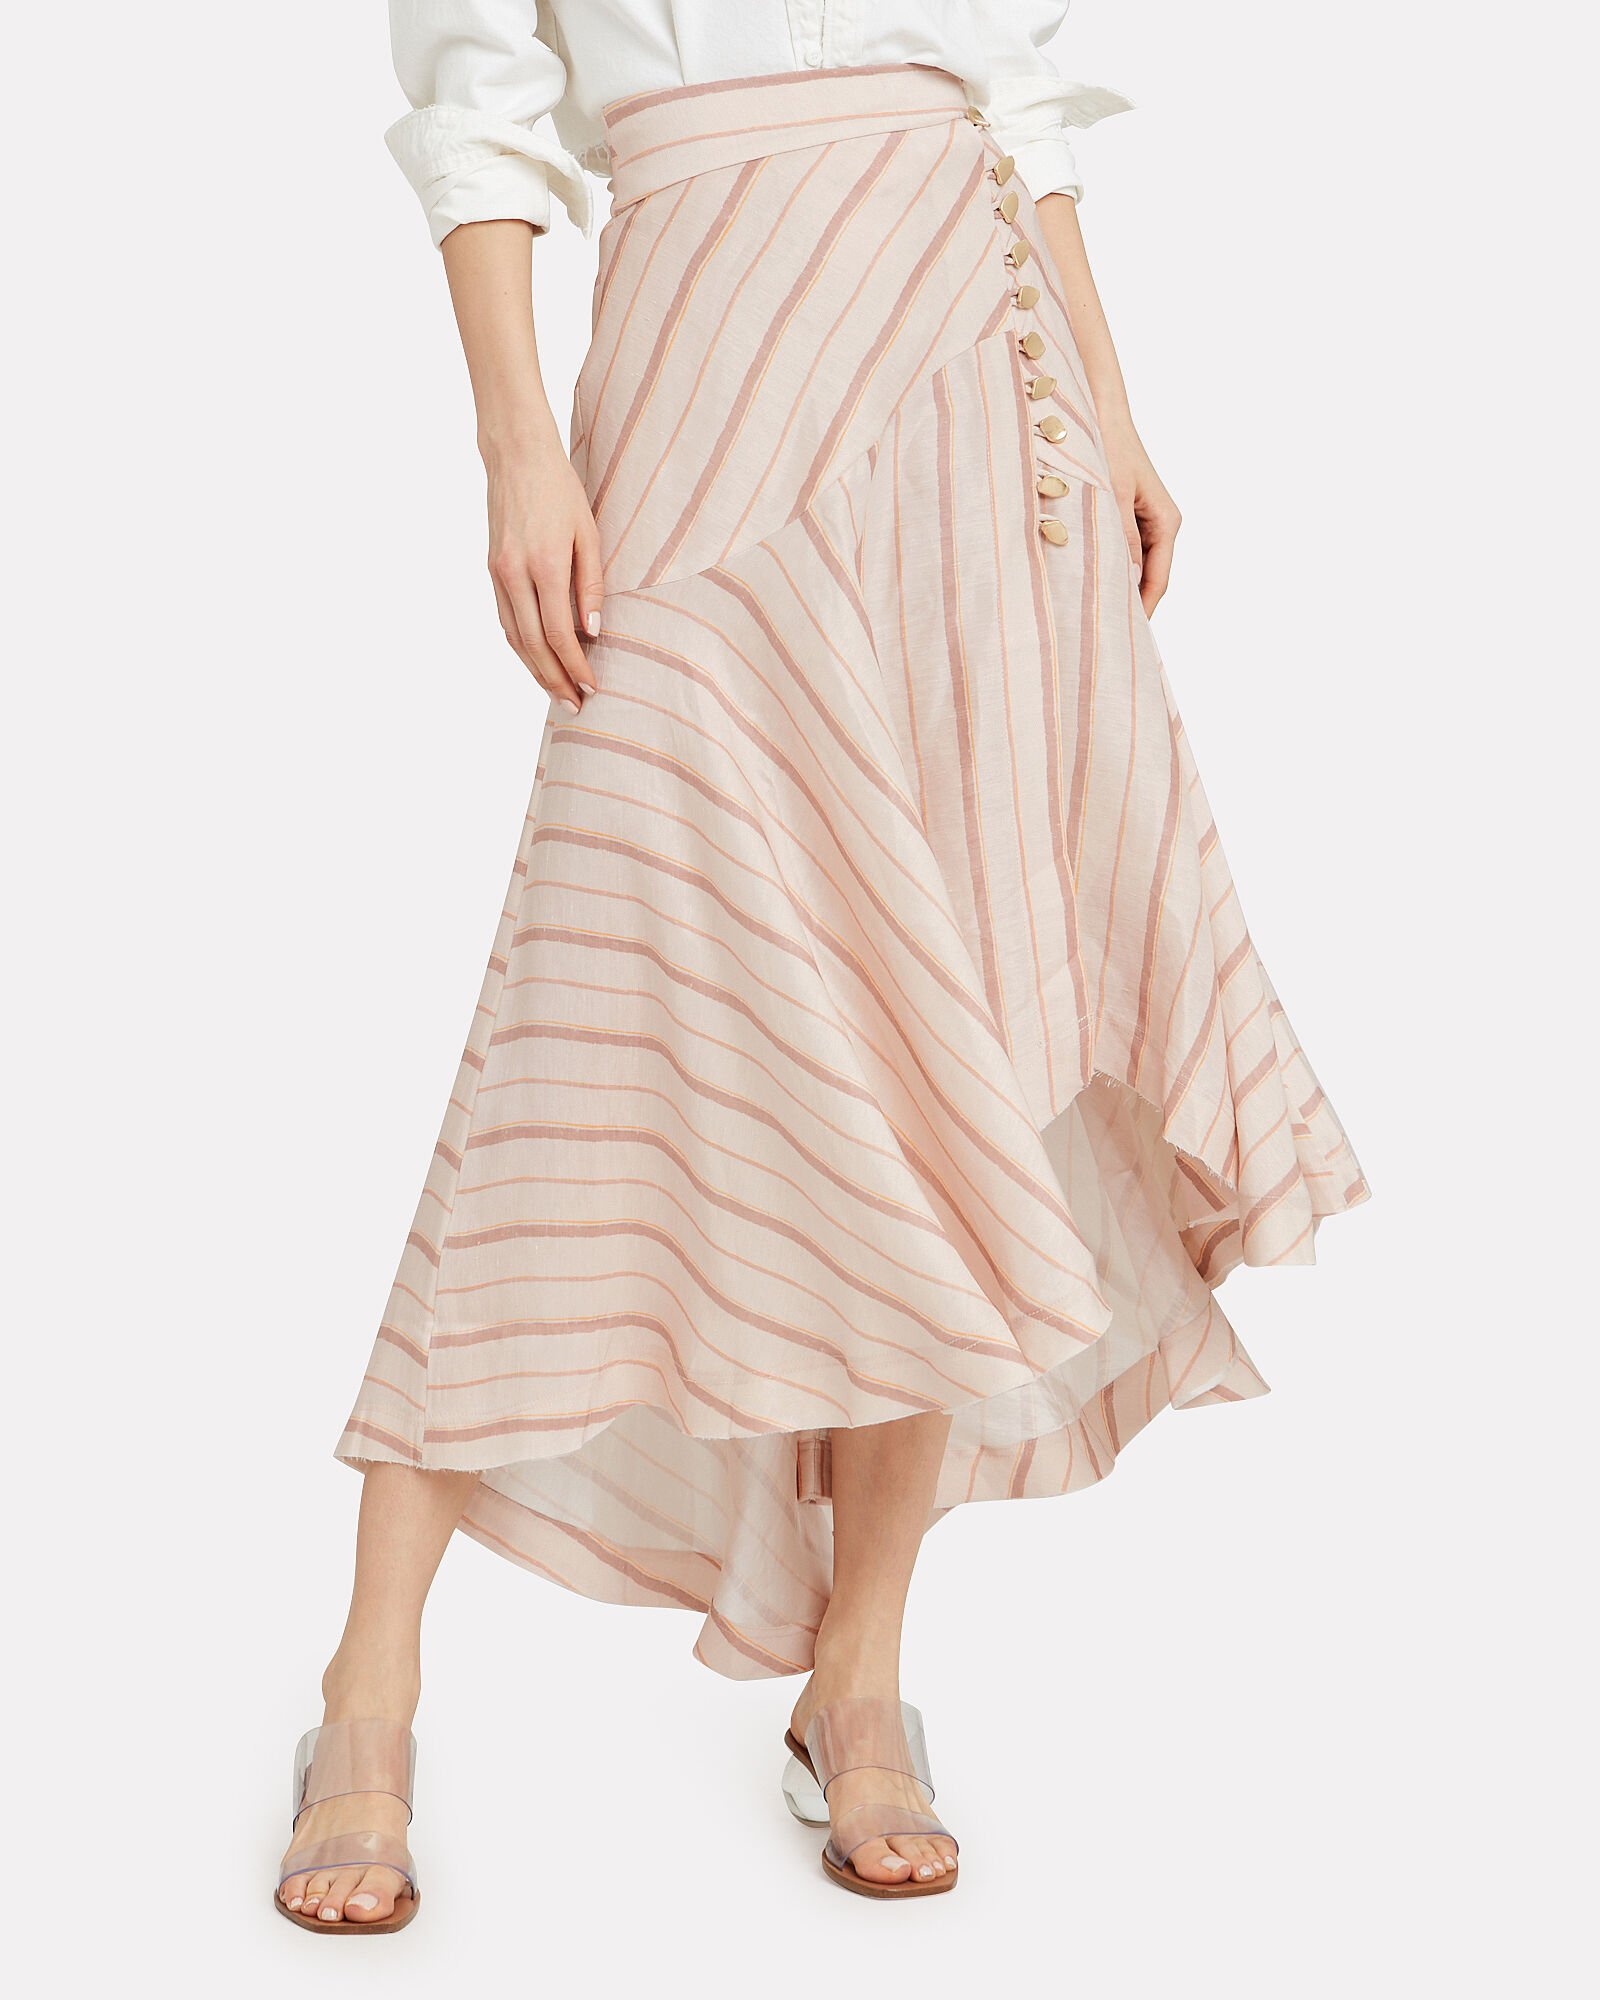 Cora Silk Linen Striped Skirt, BEIGE, hi-res